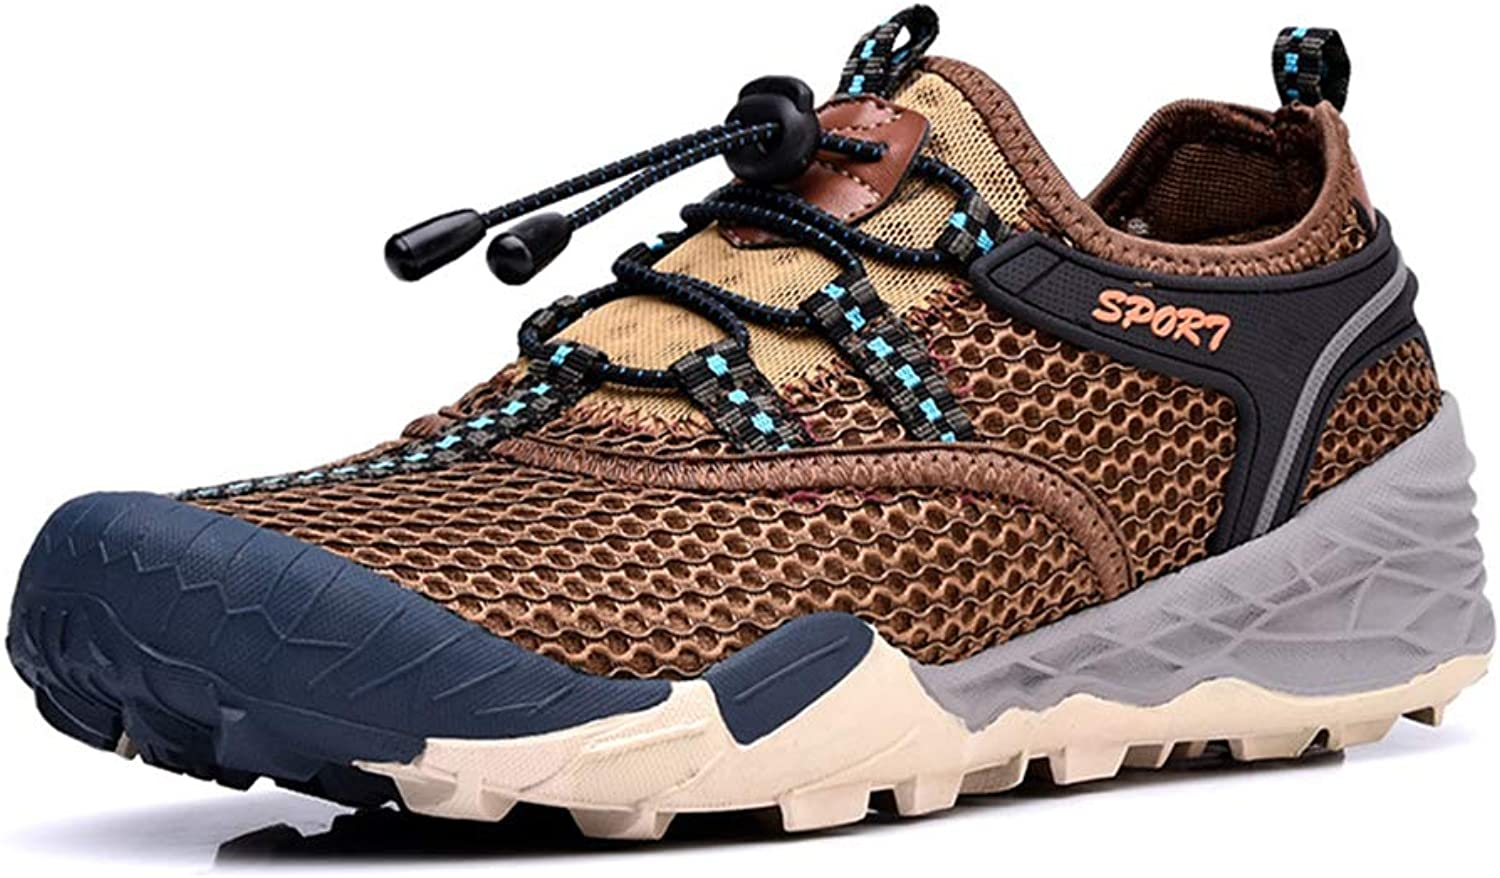 He-yanjing Men's Casual shoes, Summer New Single Layer Mesh Men's shoes Hiking shoes Waterproof Outdoor Breathable Non-slip Hiking shoes,b,41